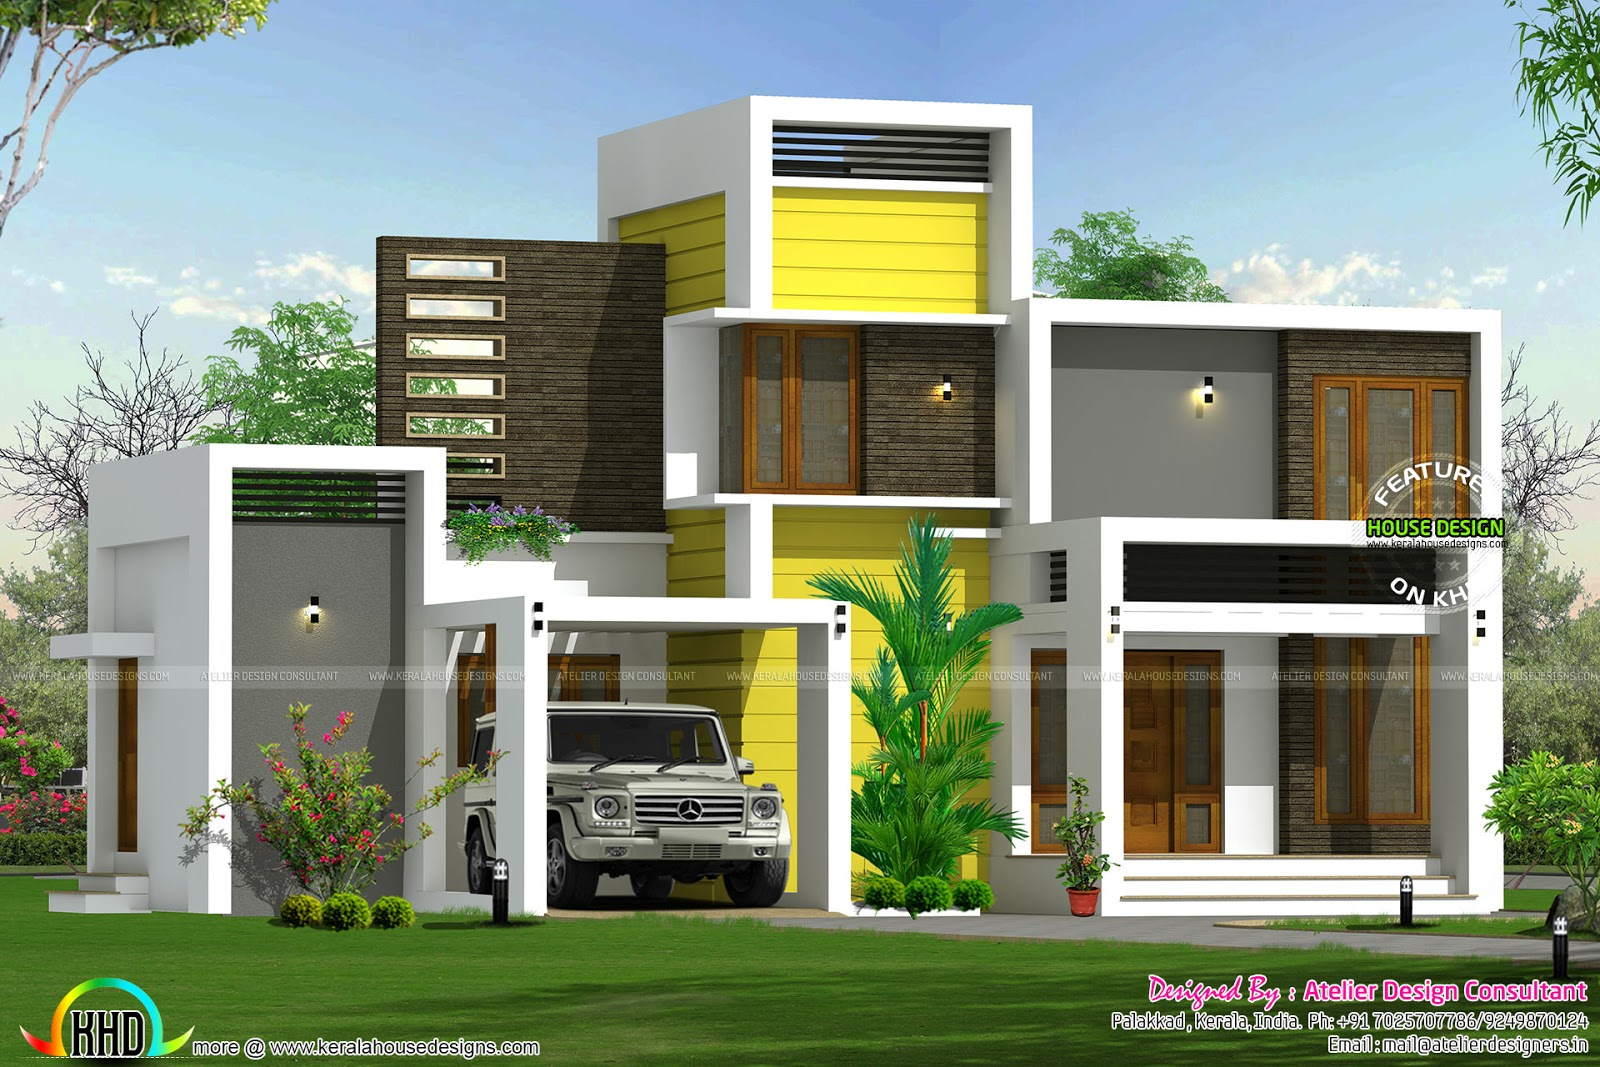 16 lakhs solid programme architecture  Kerala identify pattern as well as flooring plans